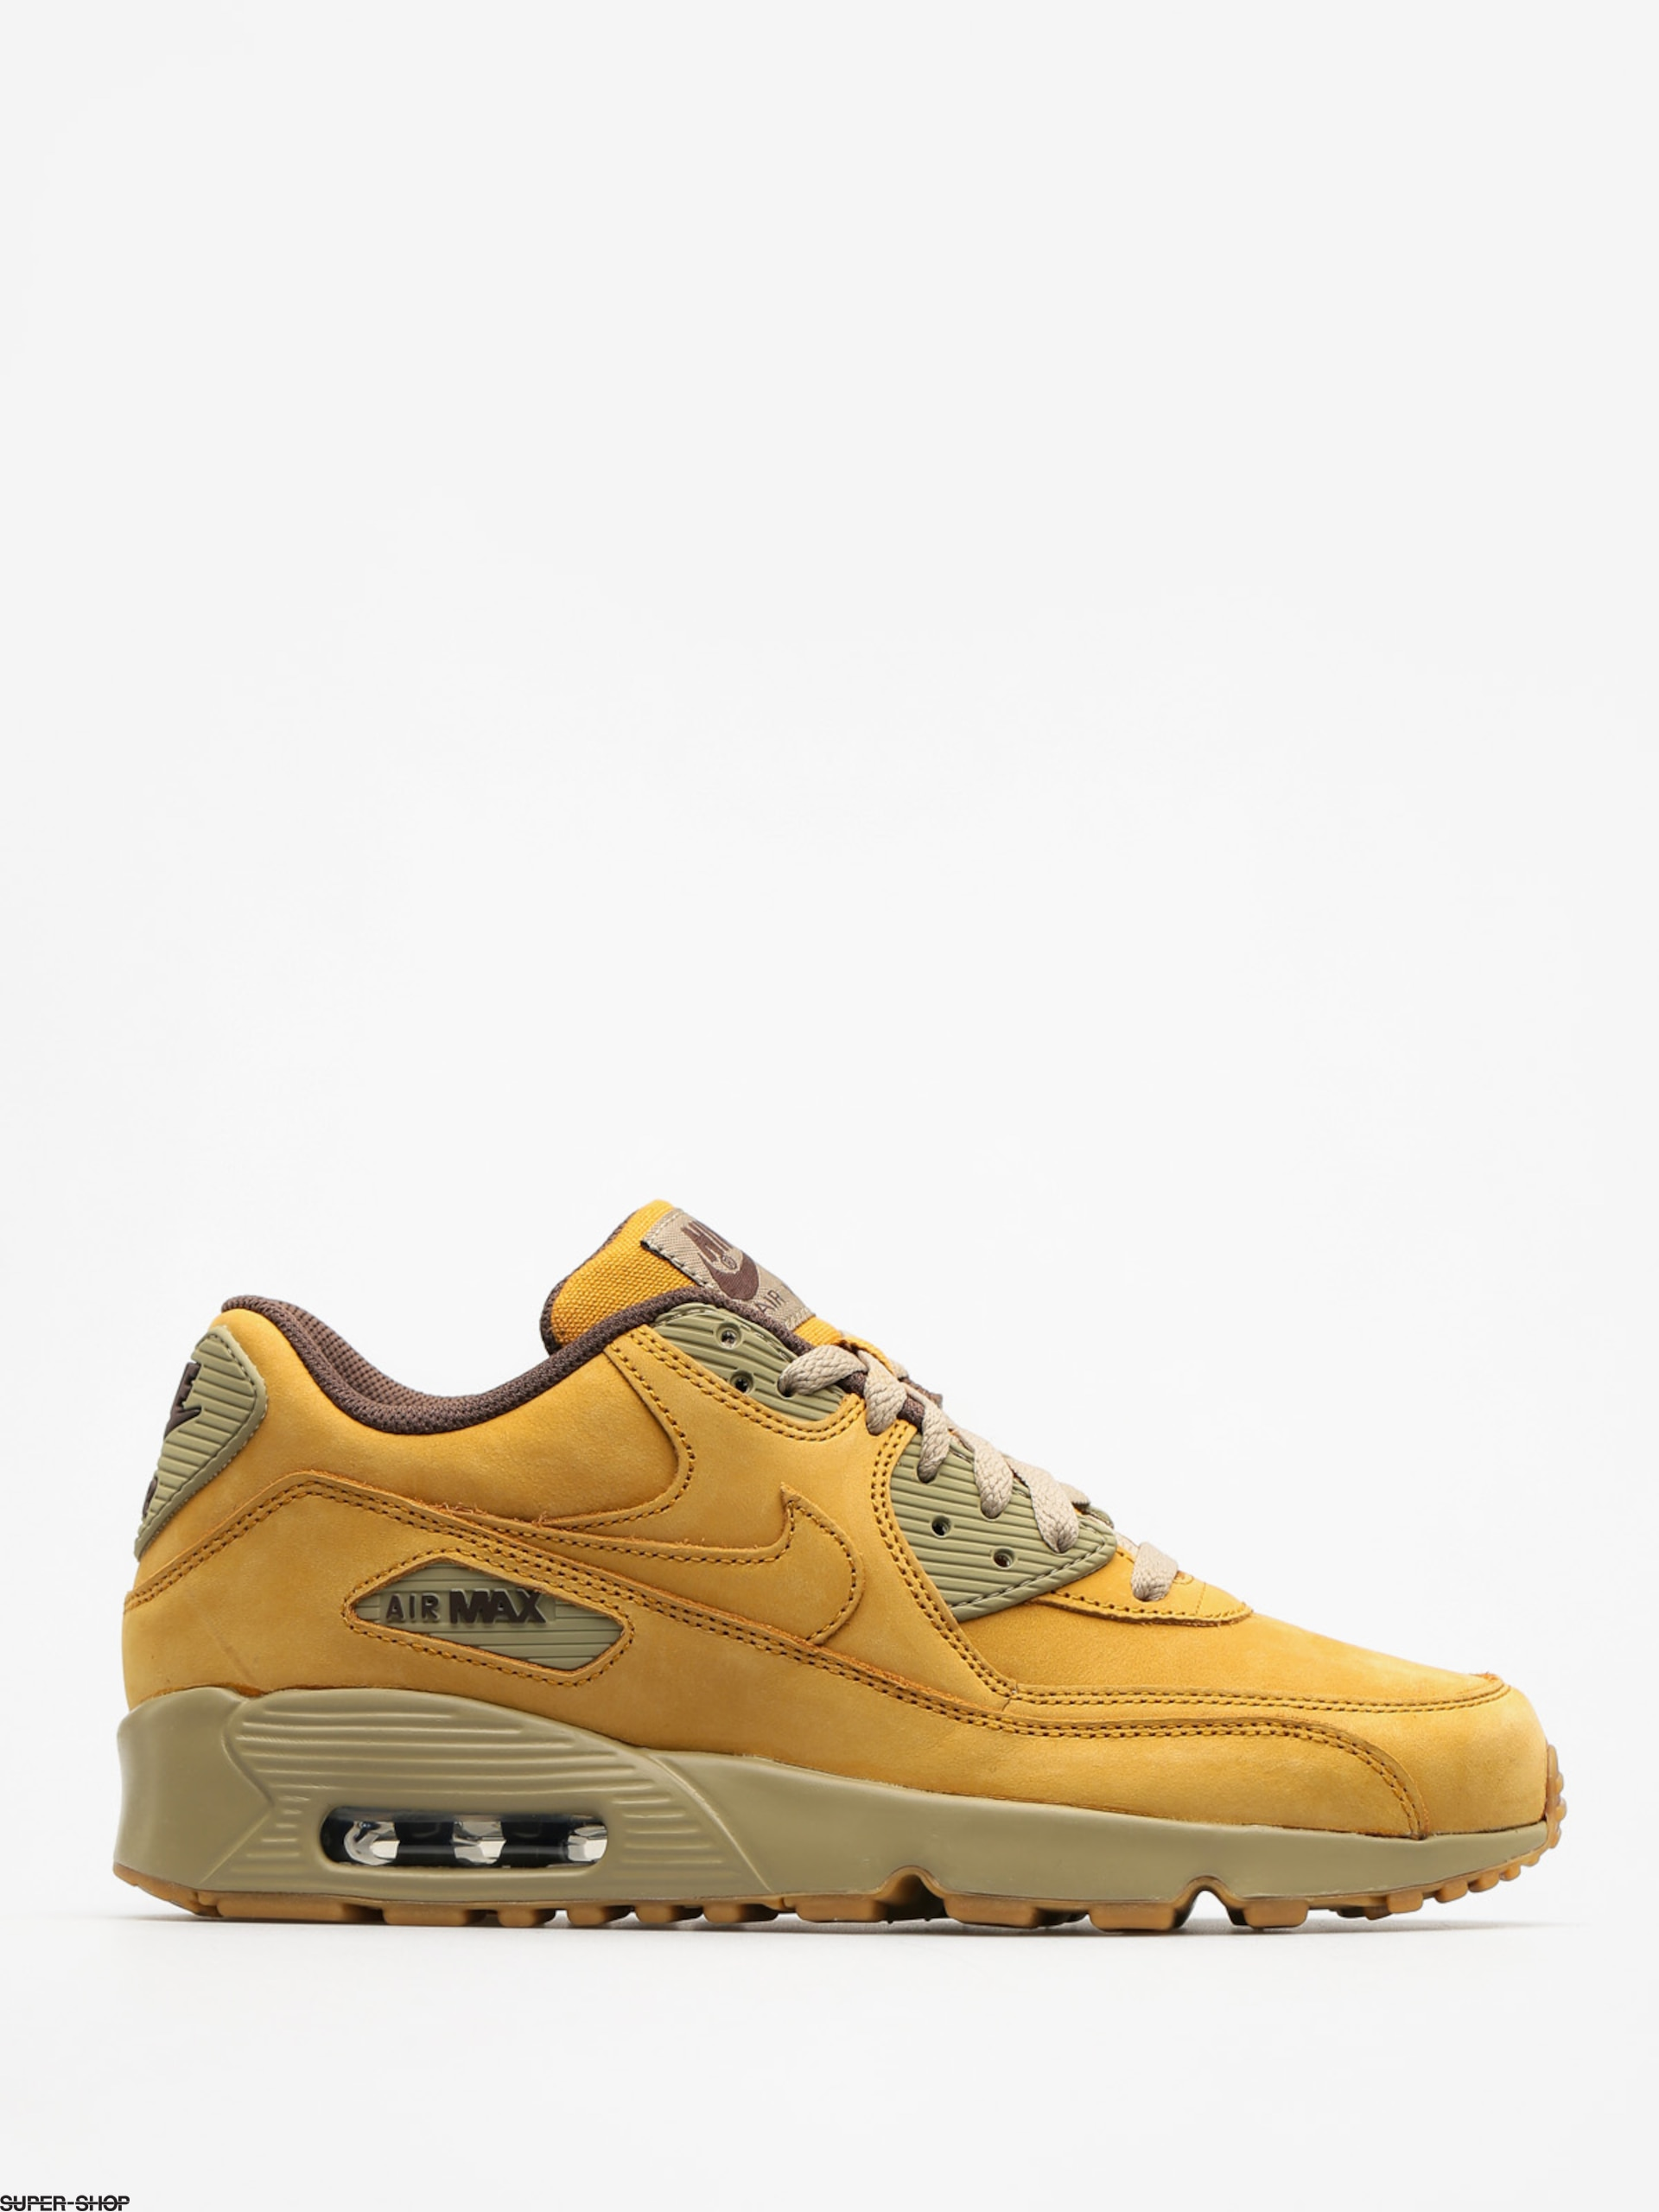 Nike Shoes Air Max 90 Winter Premium Gs (bronze/bronze baroque brown bamboo)